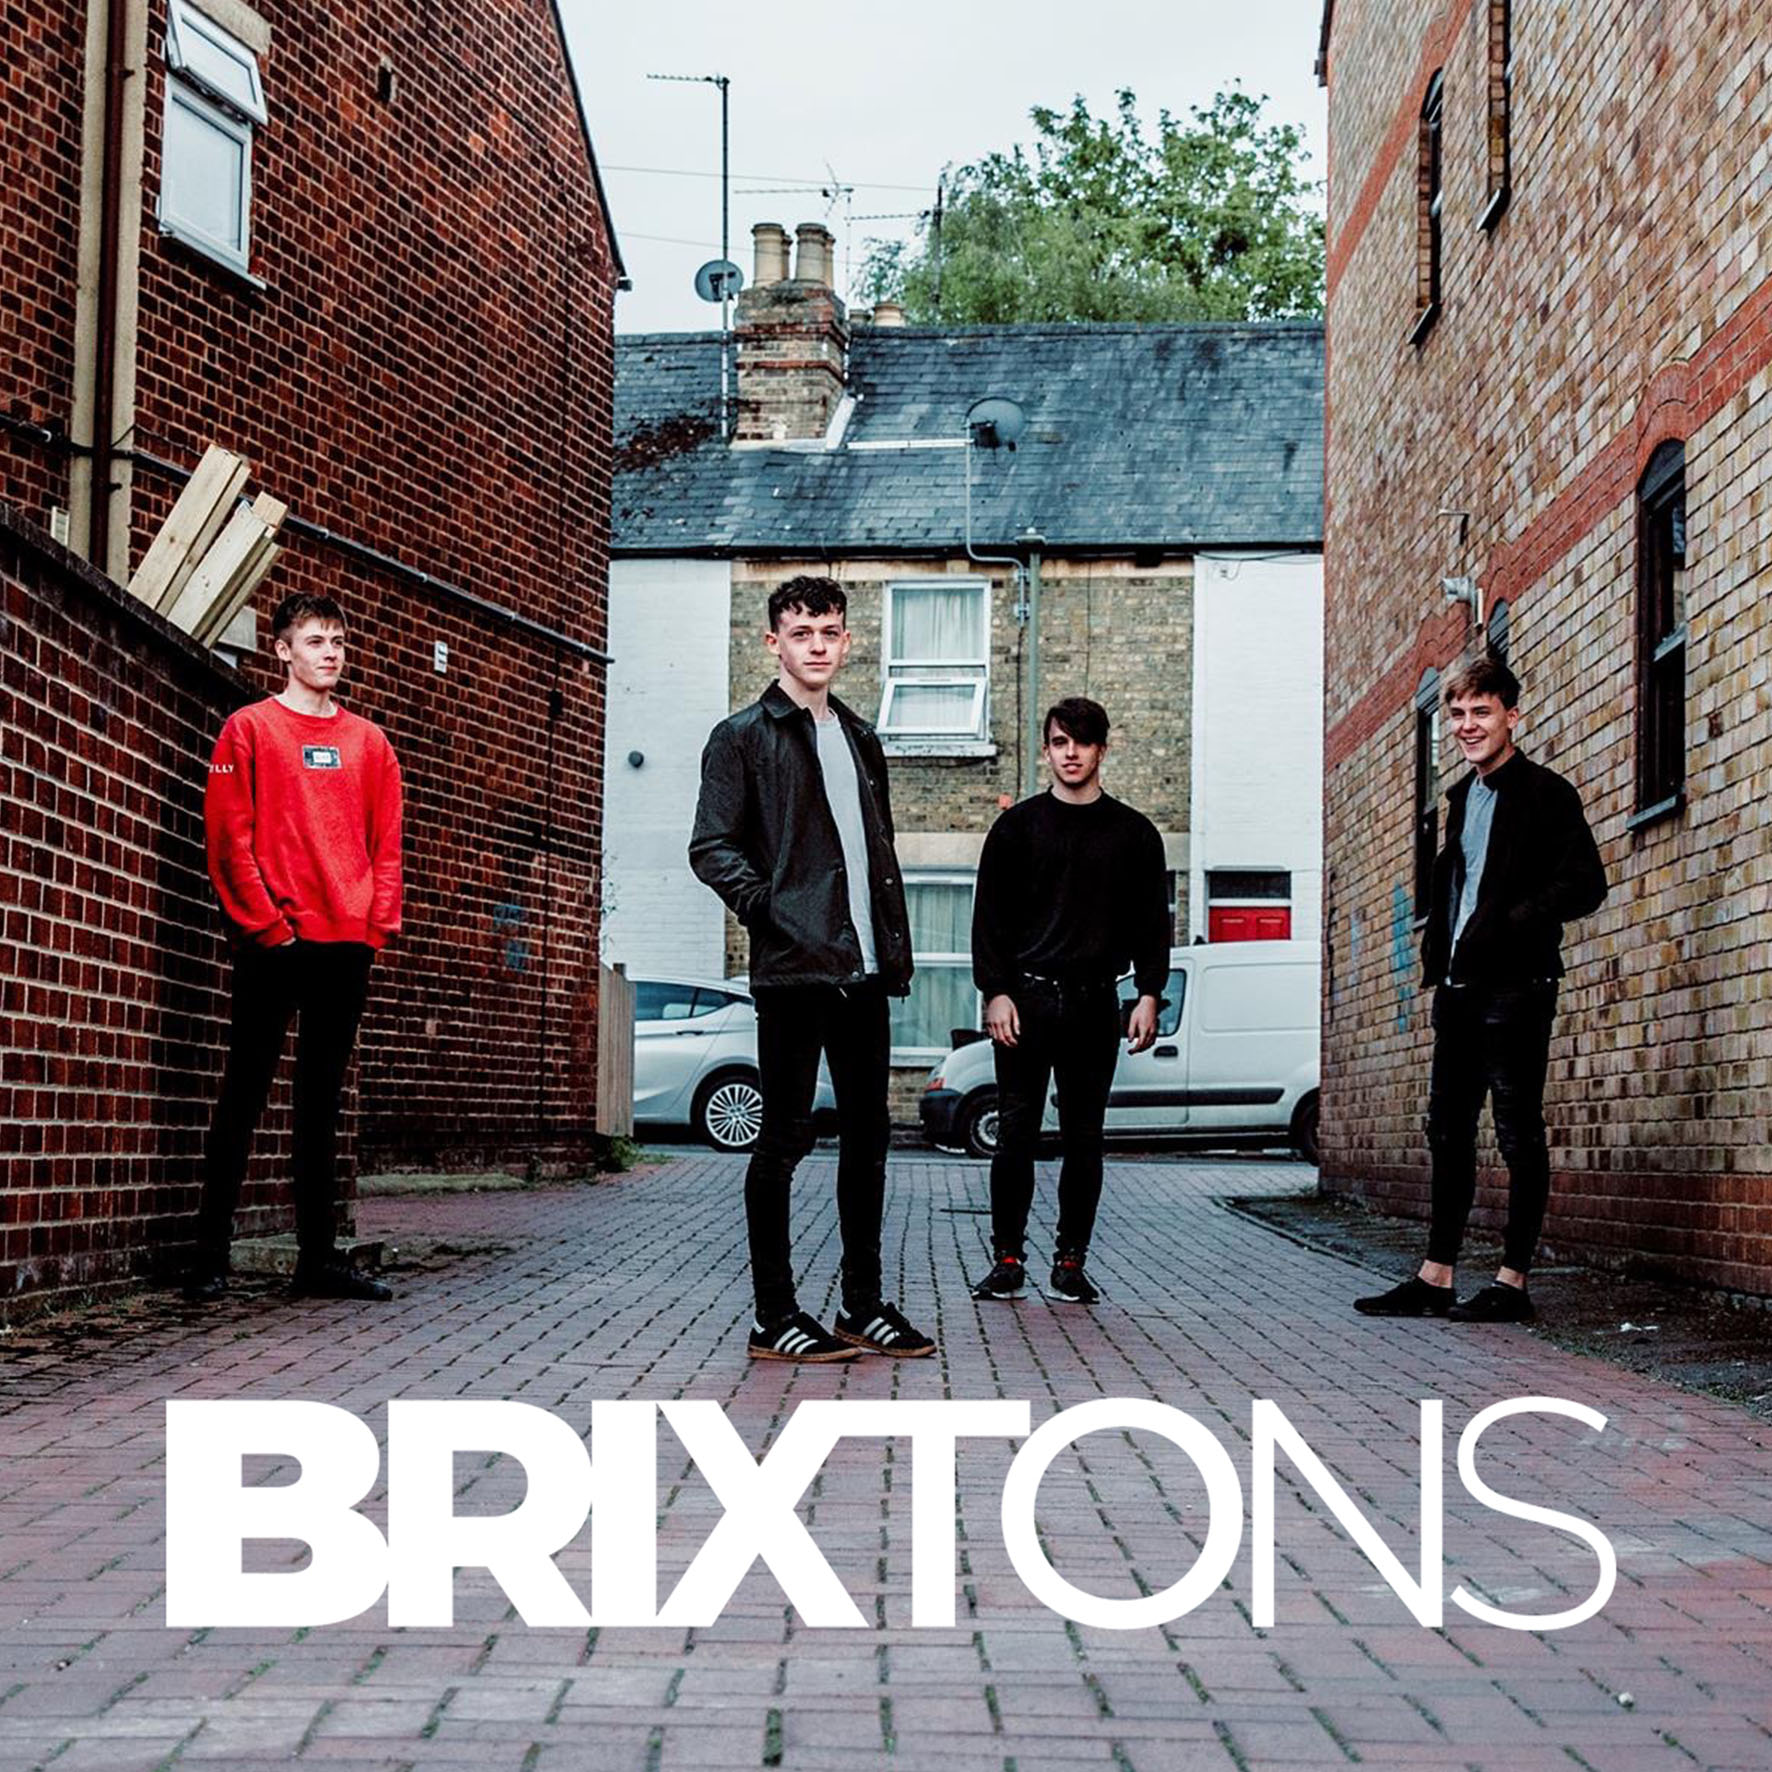 band members in alleyway with brixtons logo